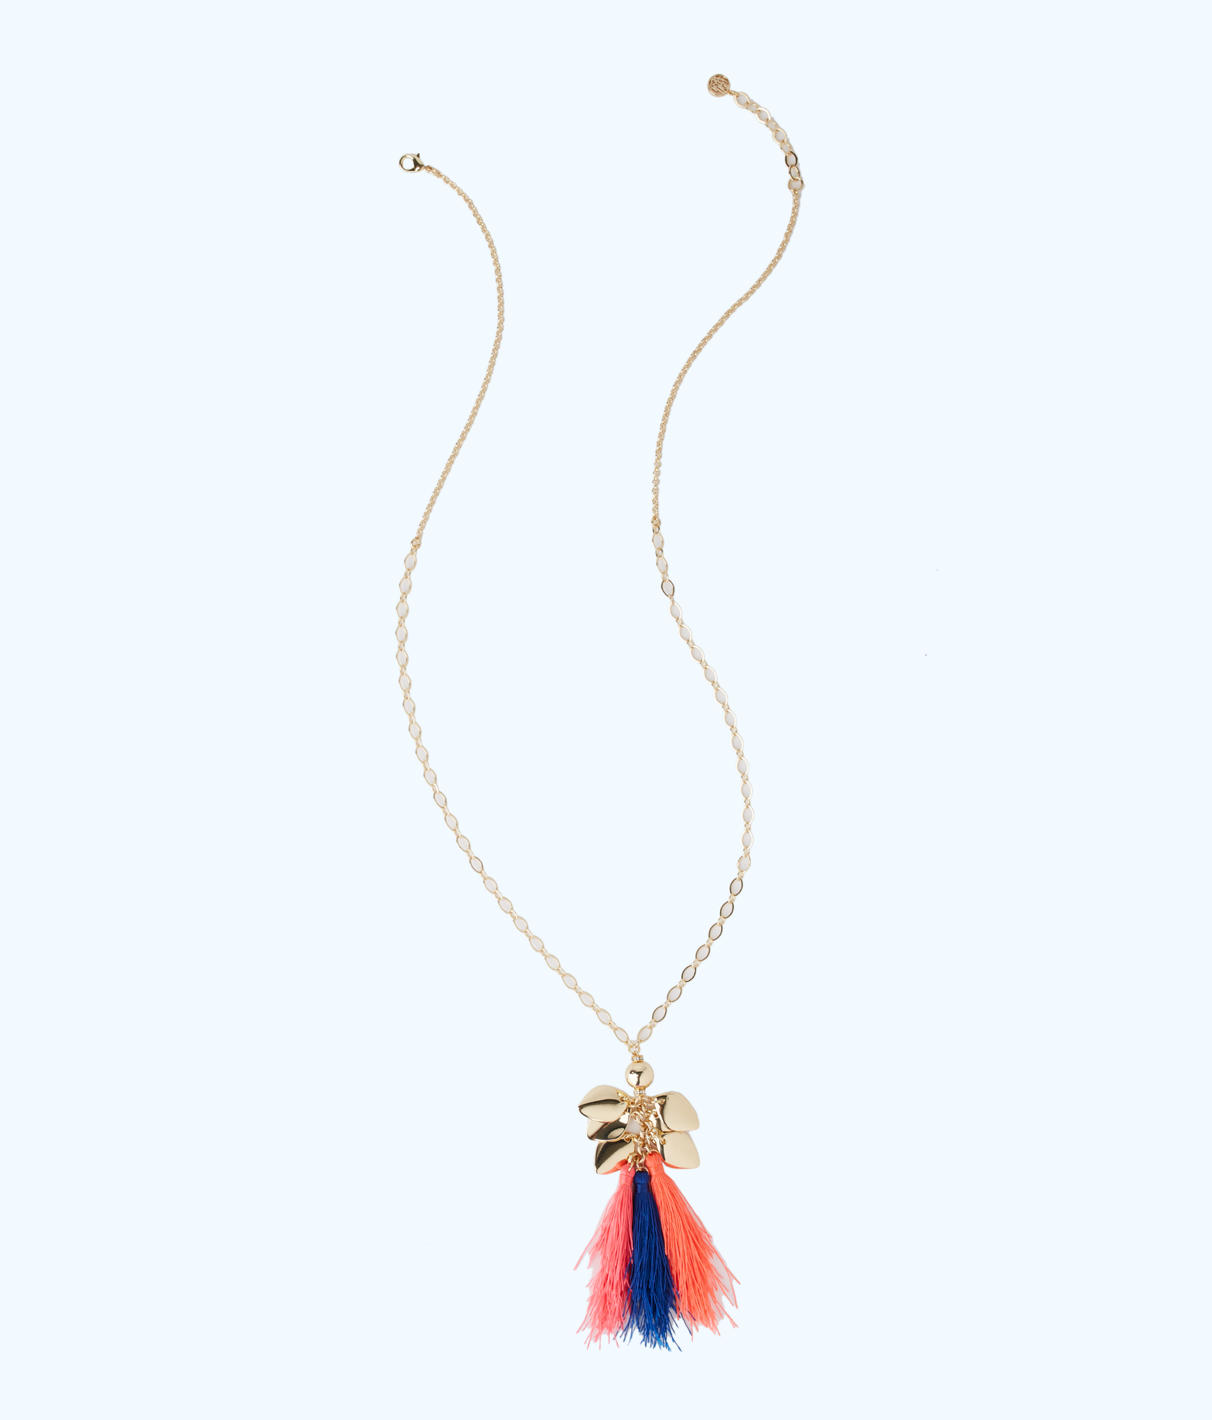 Lilly Pulitzer Lilly Pulitzer Quill Out Pendant